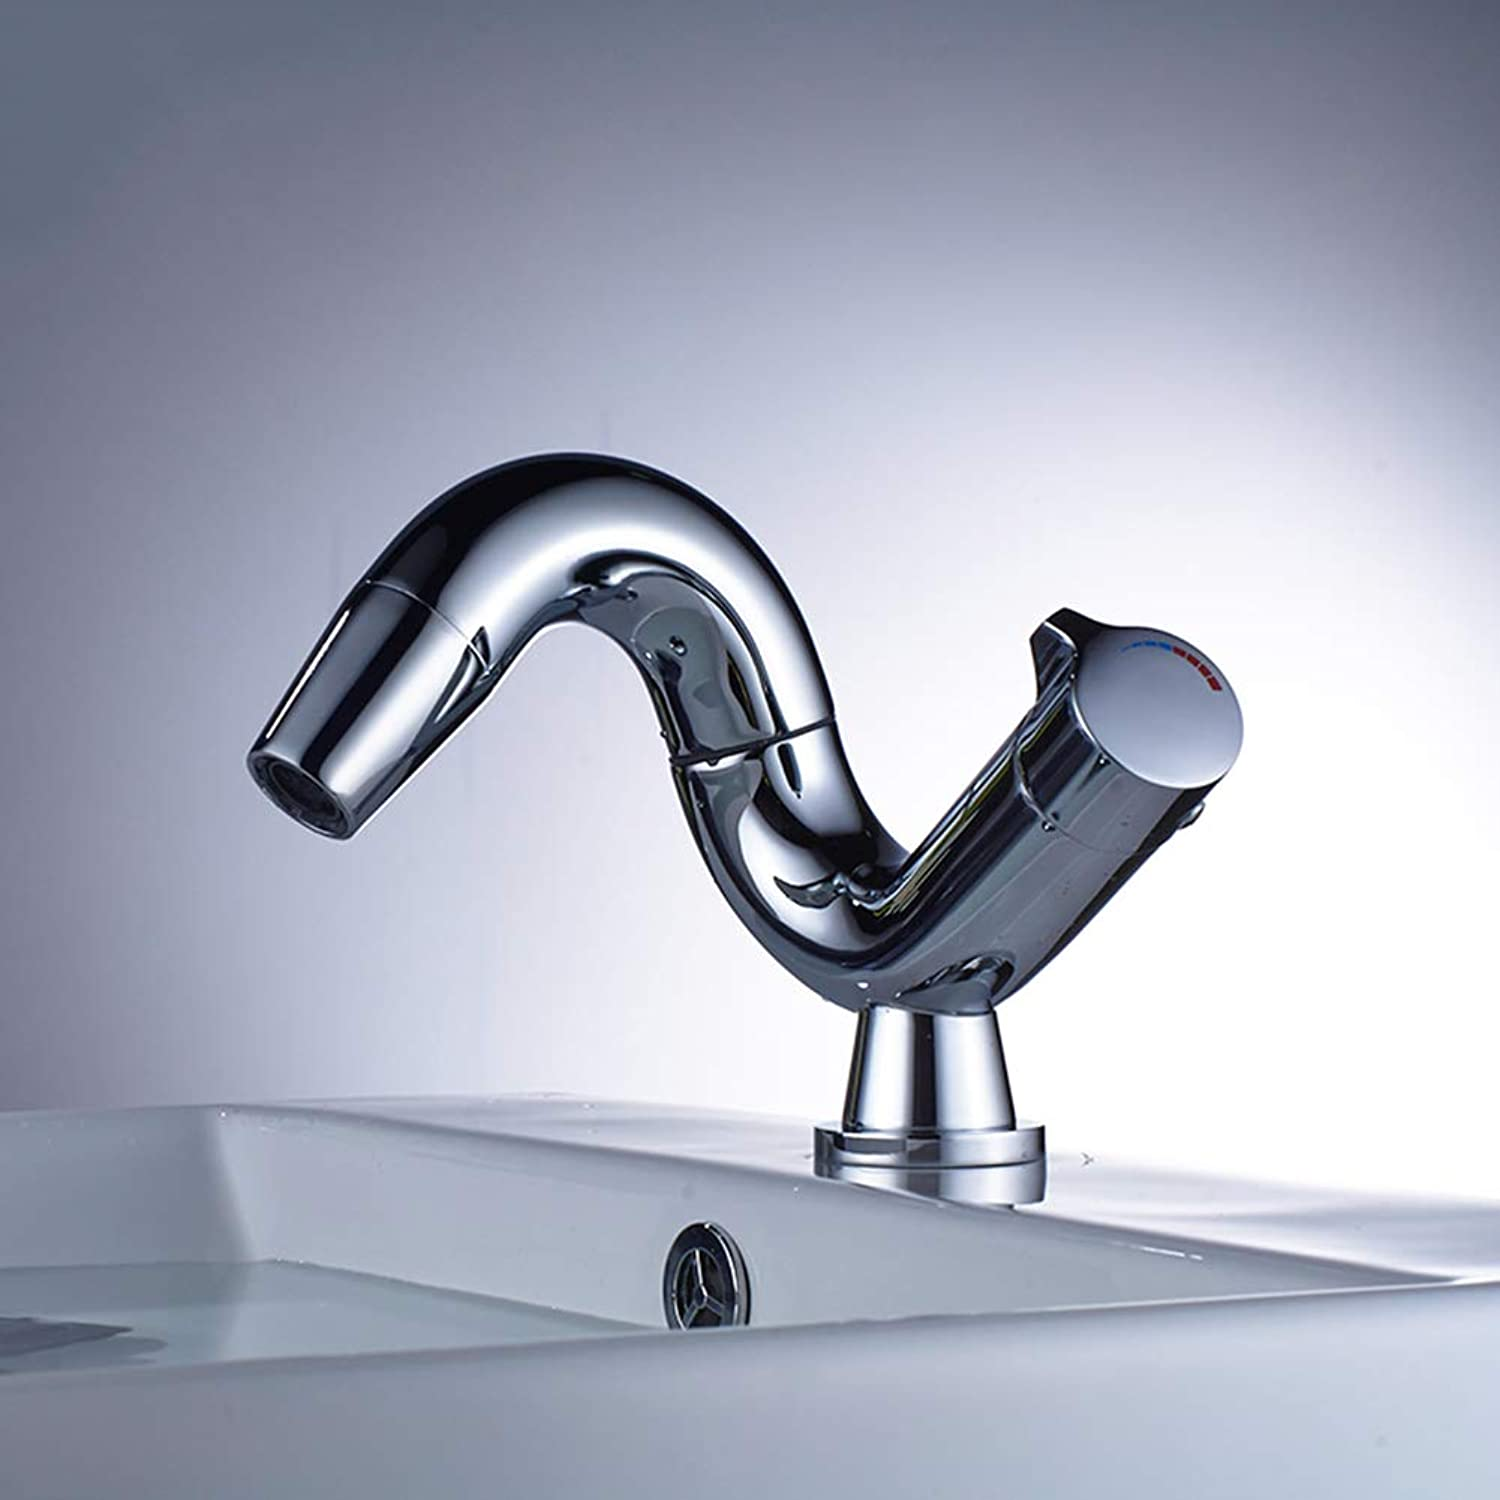 redary tap, Chrome Finishing 360 Degree redate Brass Single Lever Water Tap, Bathroom Sink Mixer Basin Faucet